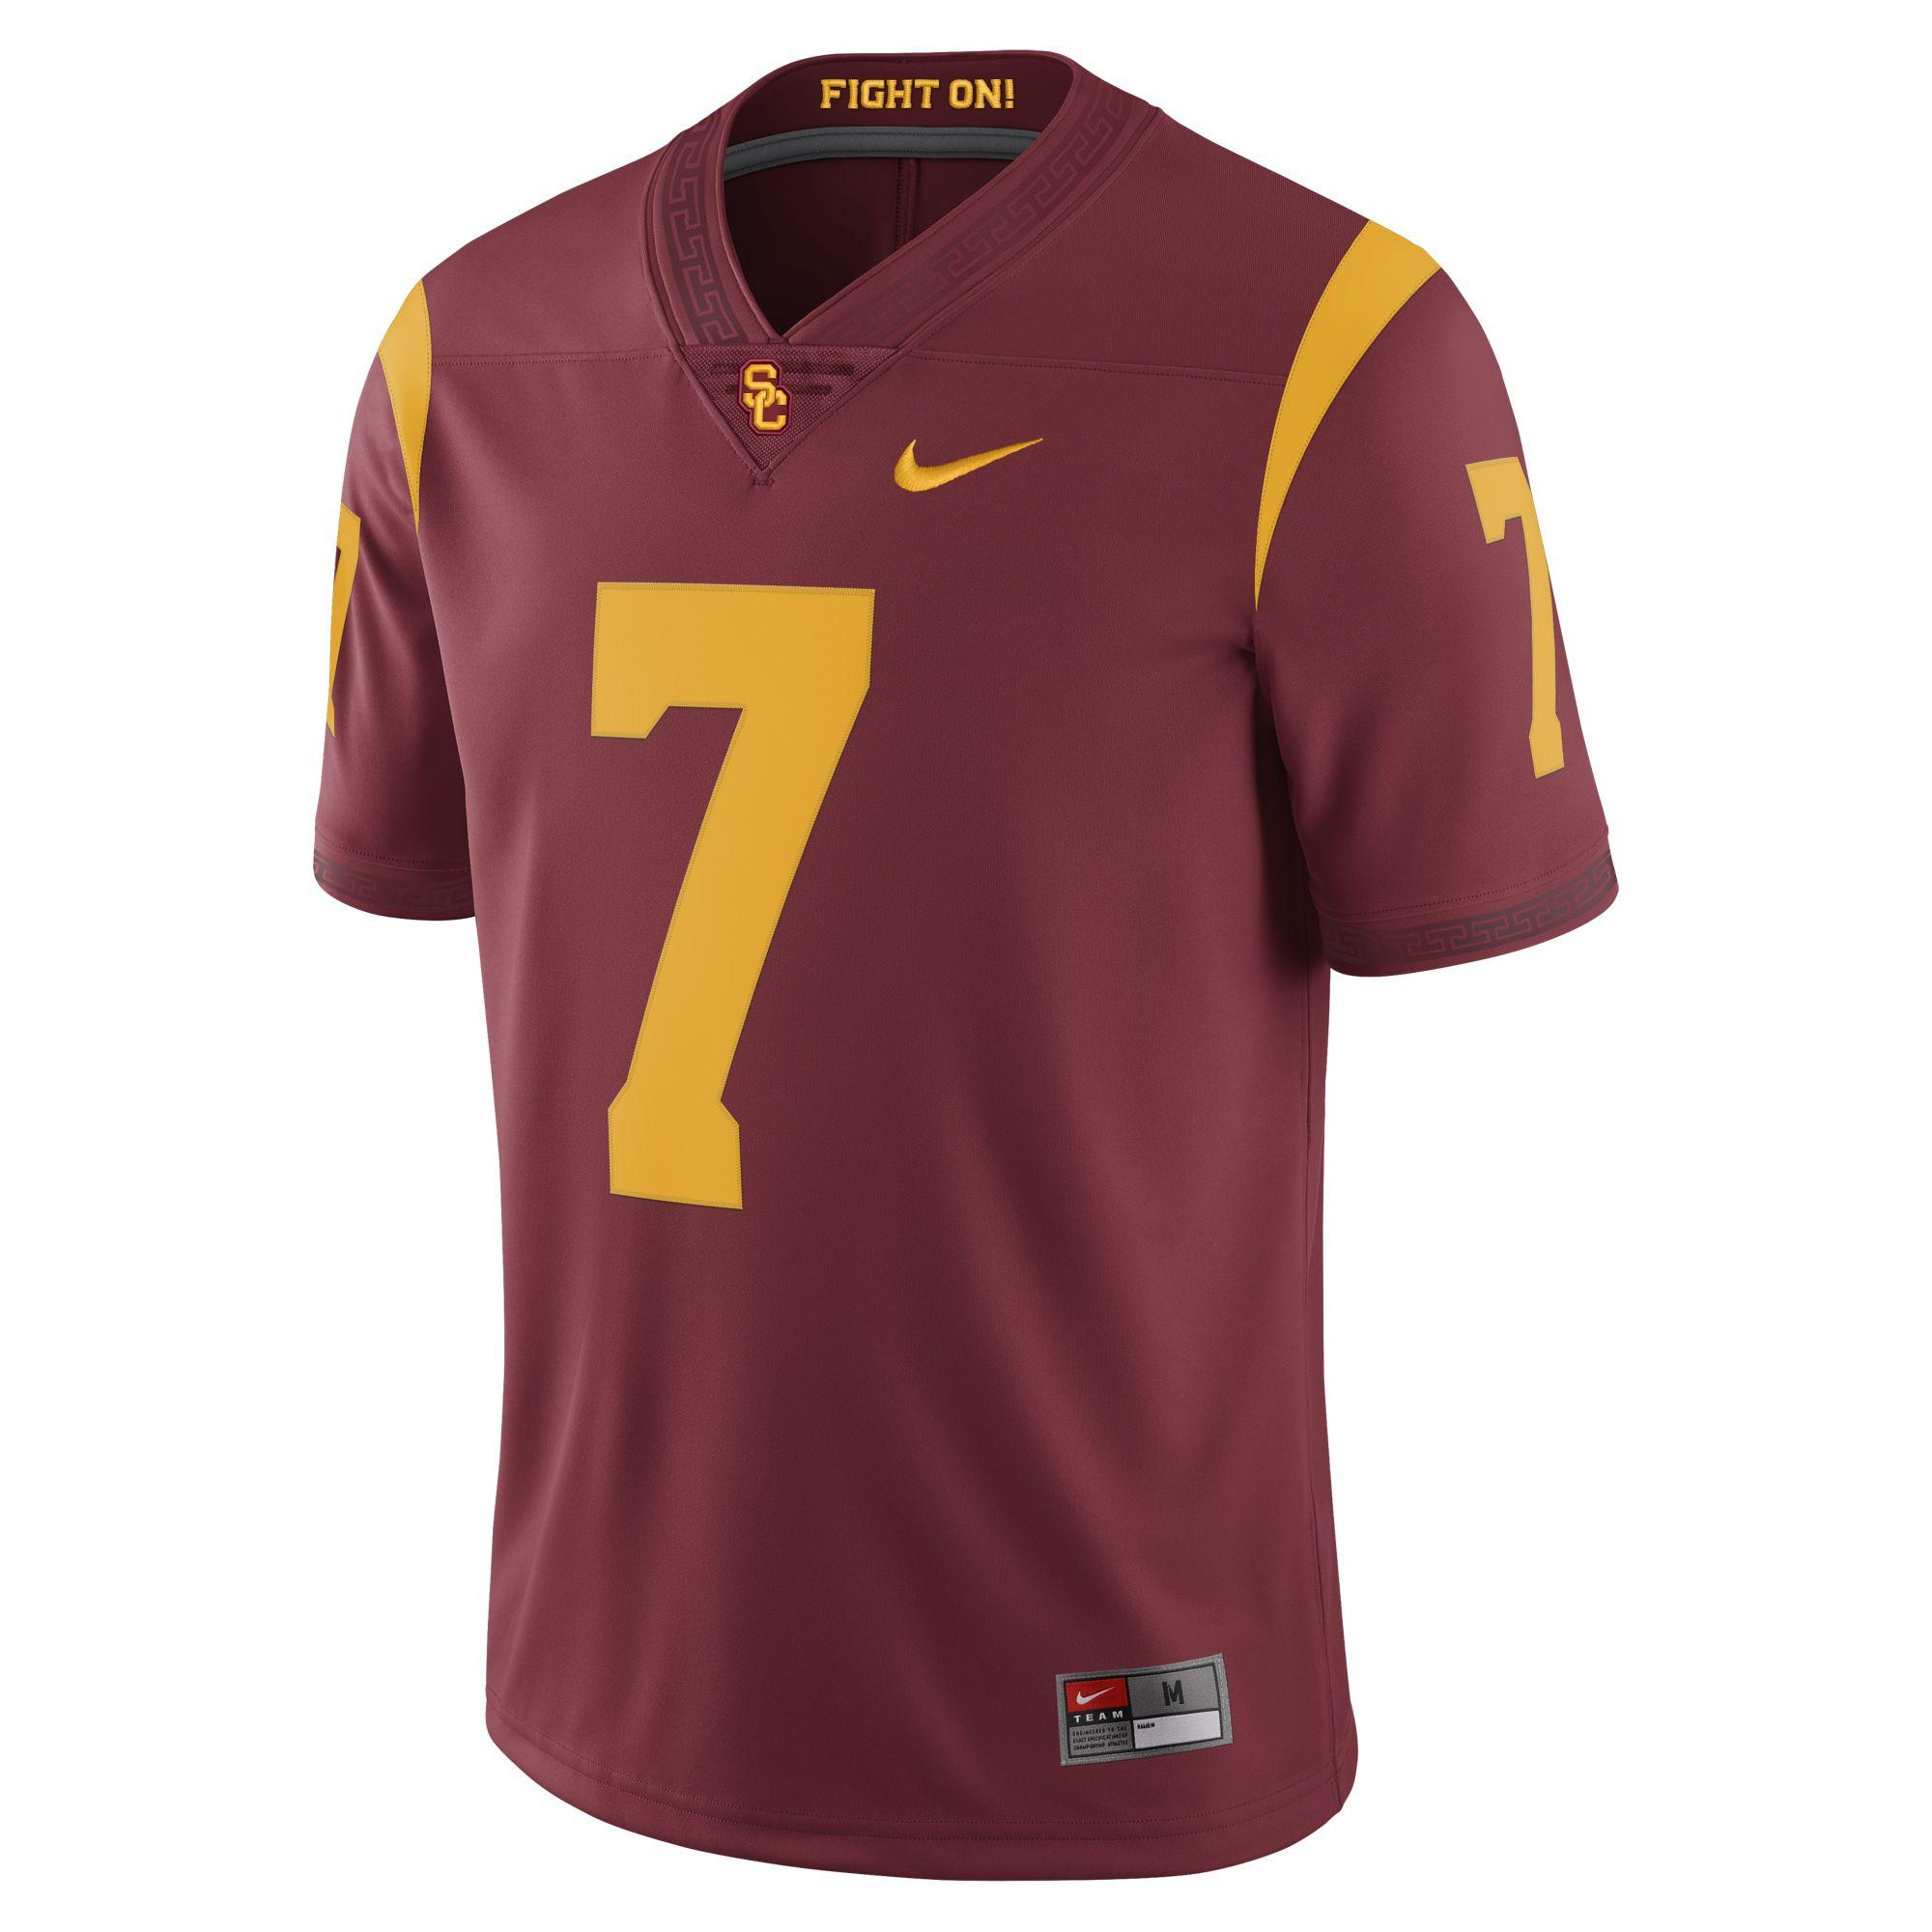 separation shoes 262e3 2ad90 USC #7 College Football Jersey (Limited Edition)